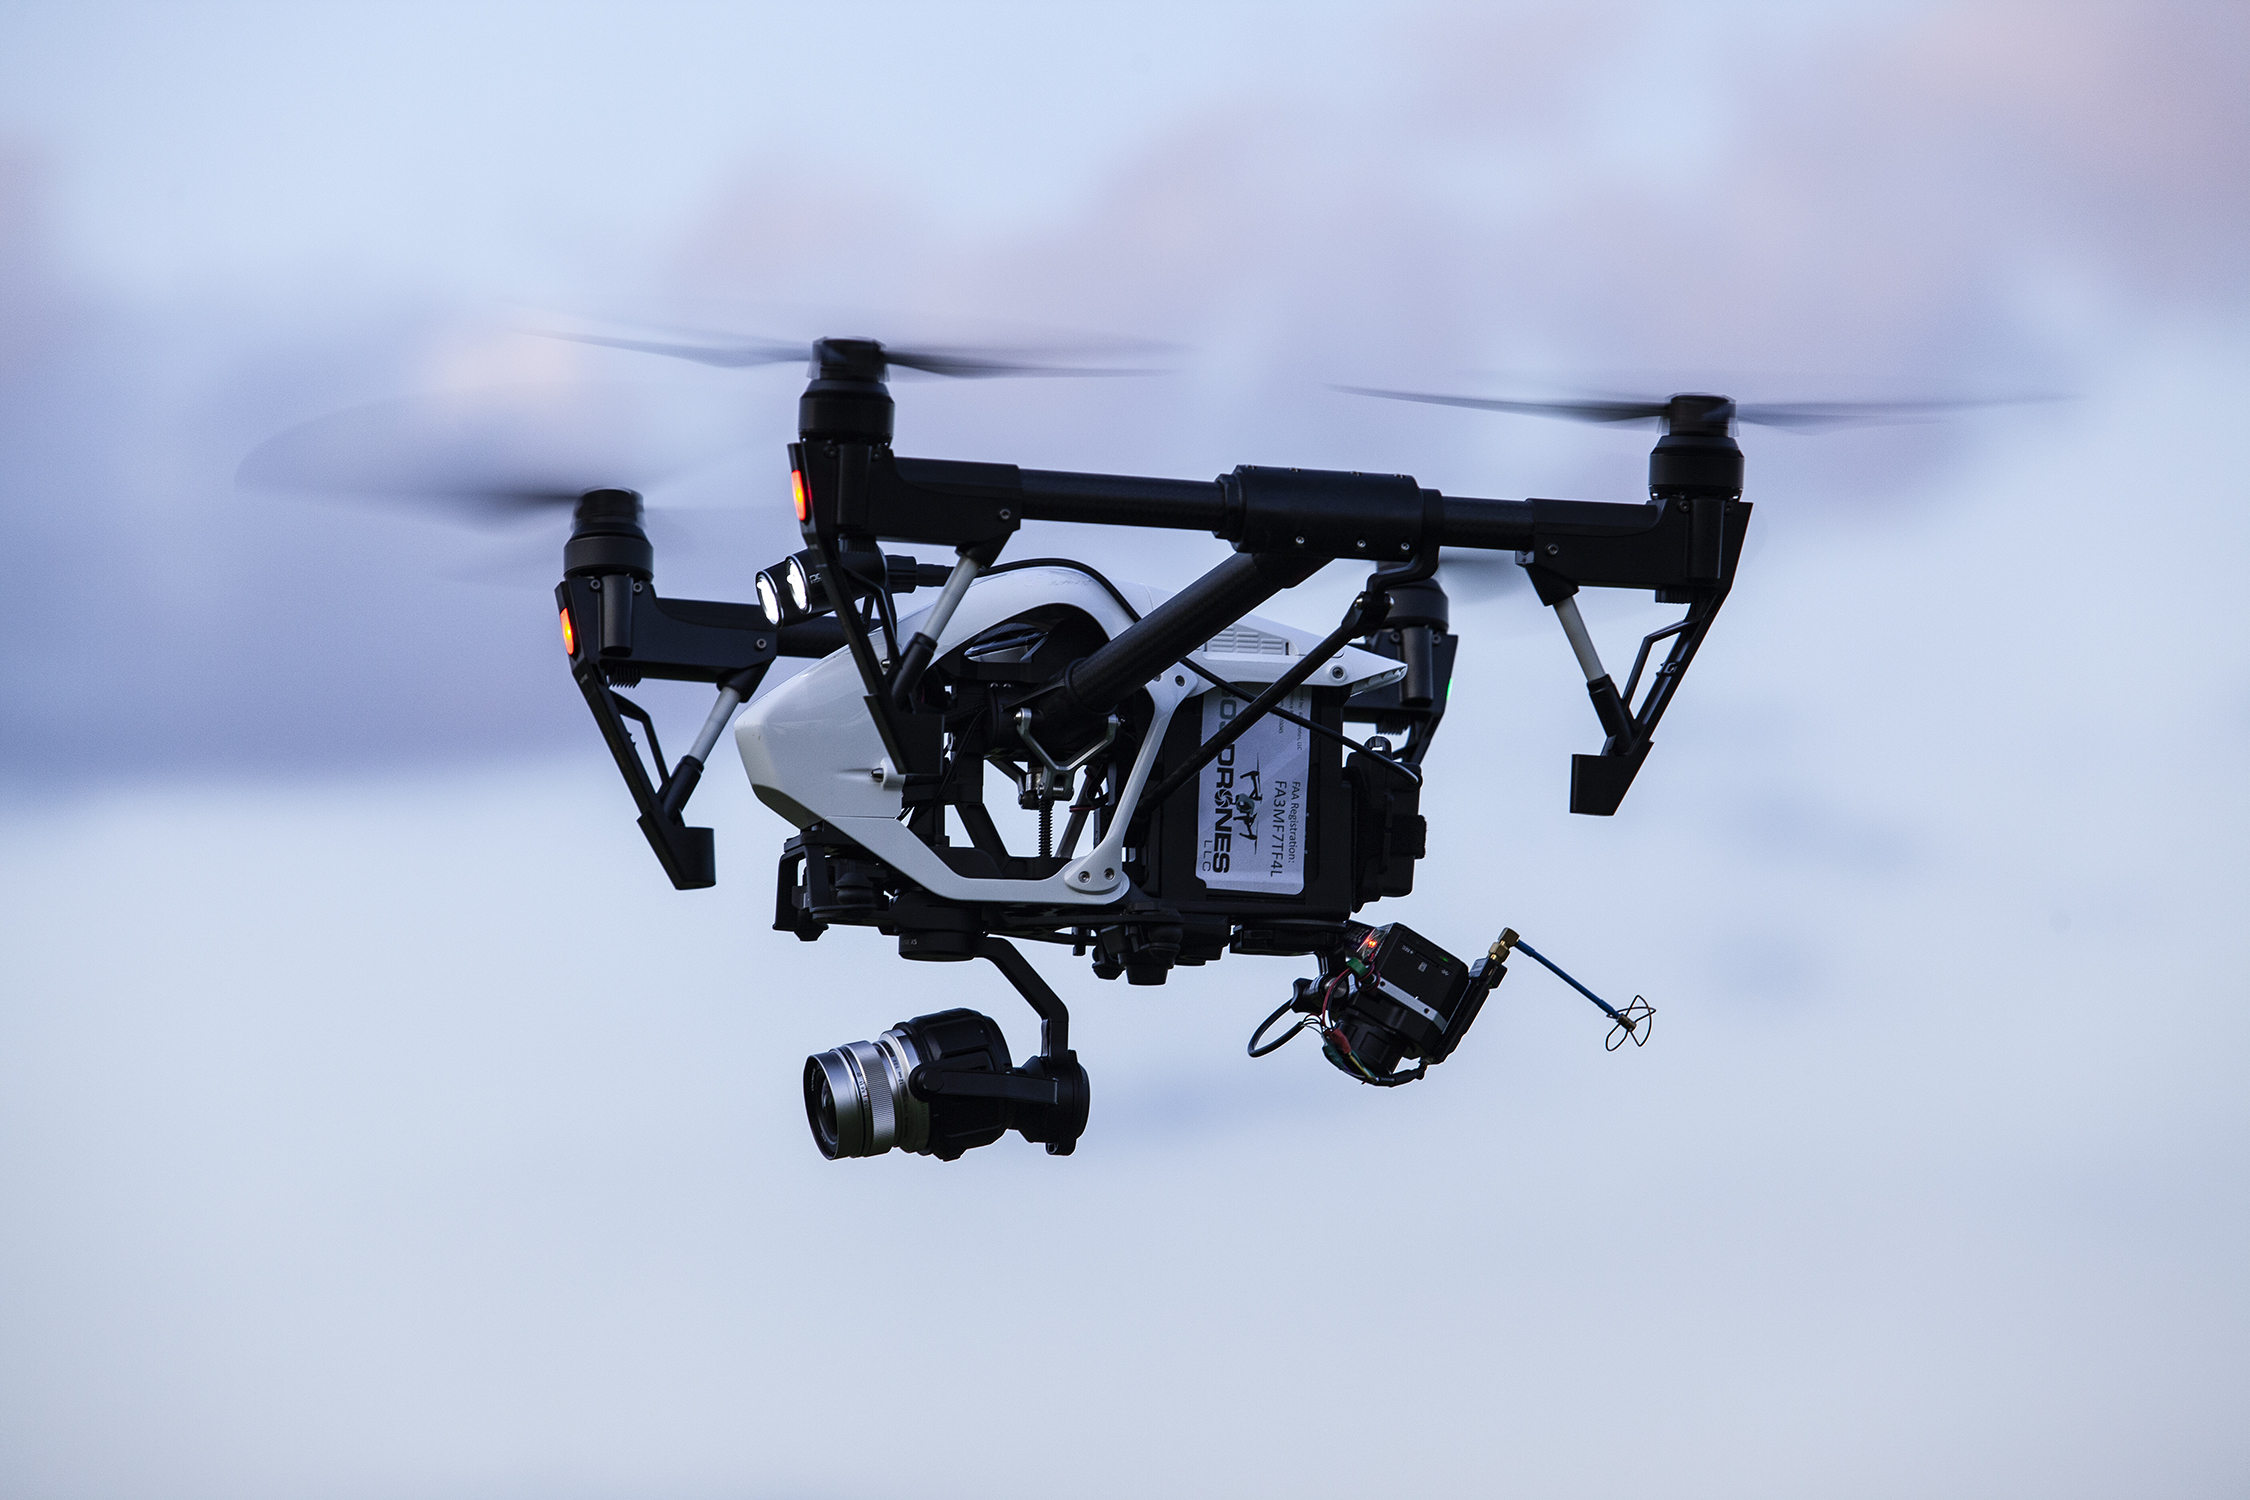 Image of DJI Inspire 1 Pro with Flir